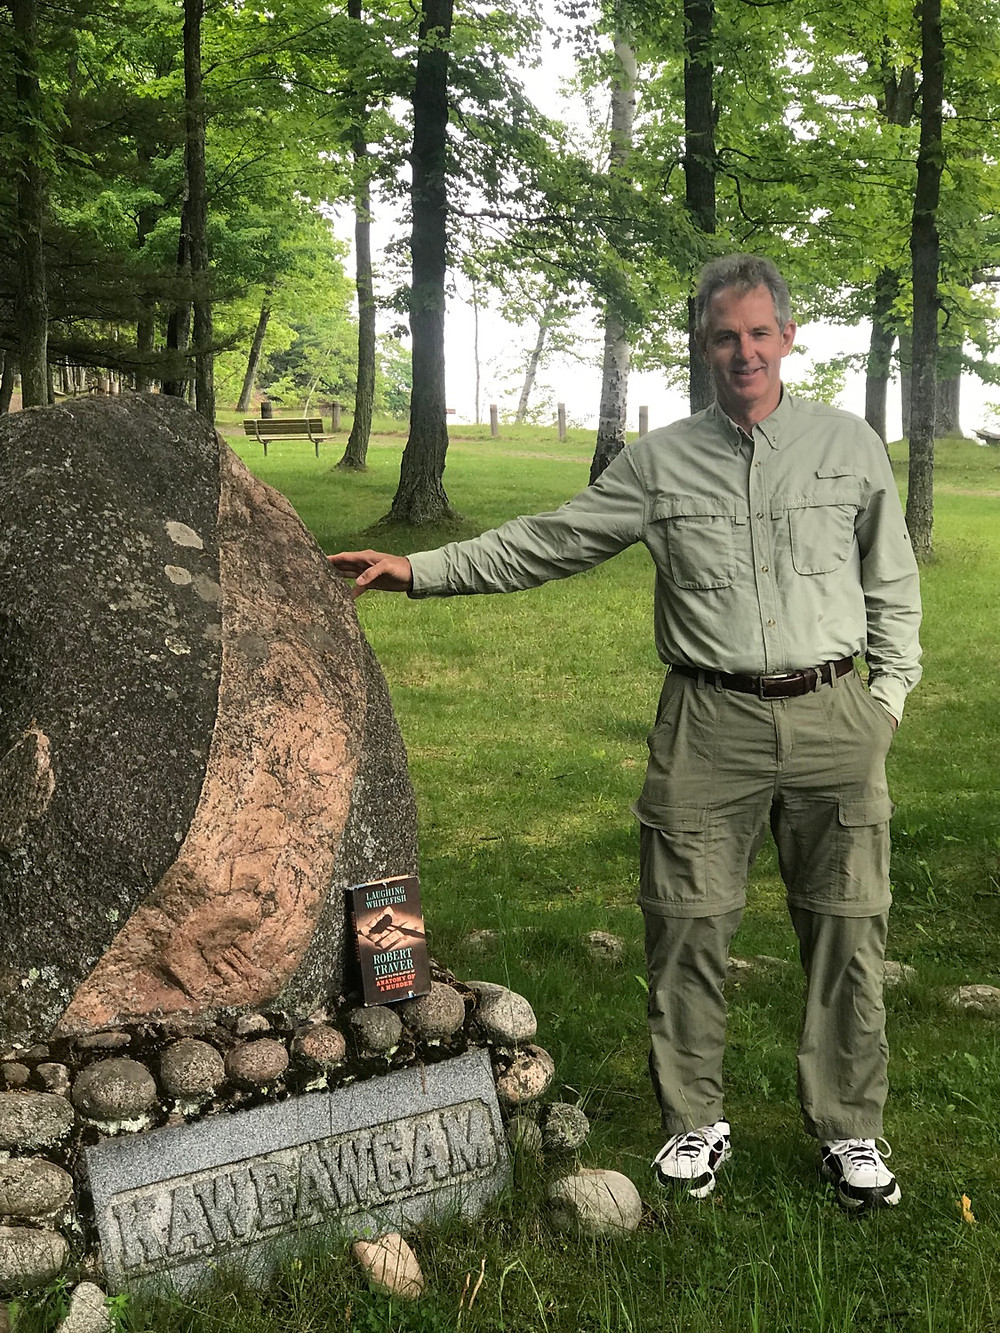 Yours truly on Presque Isle at the Kawbawgam grave.